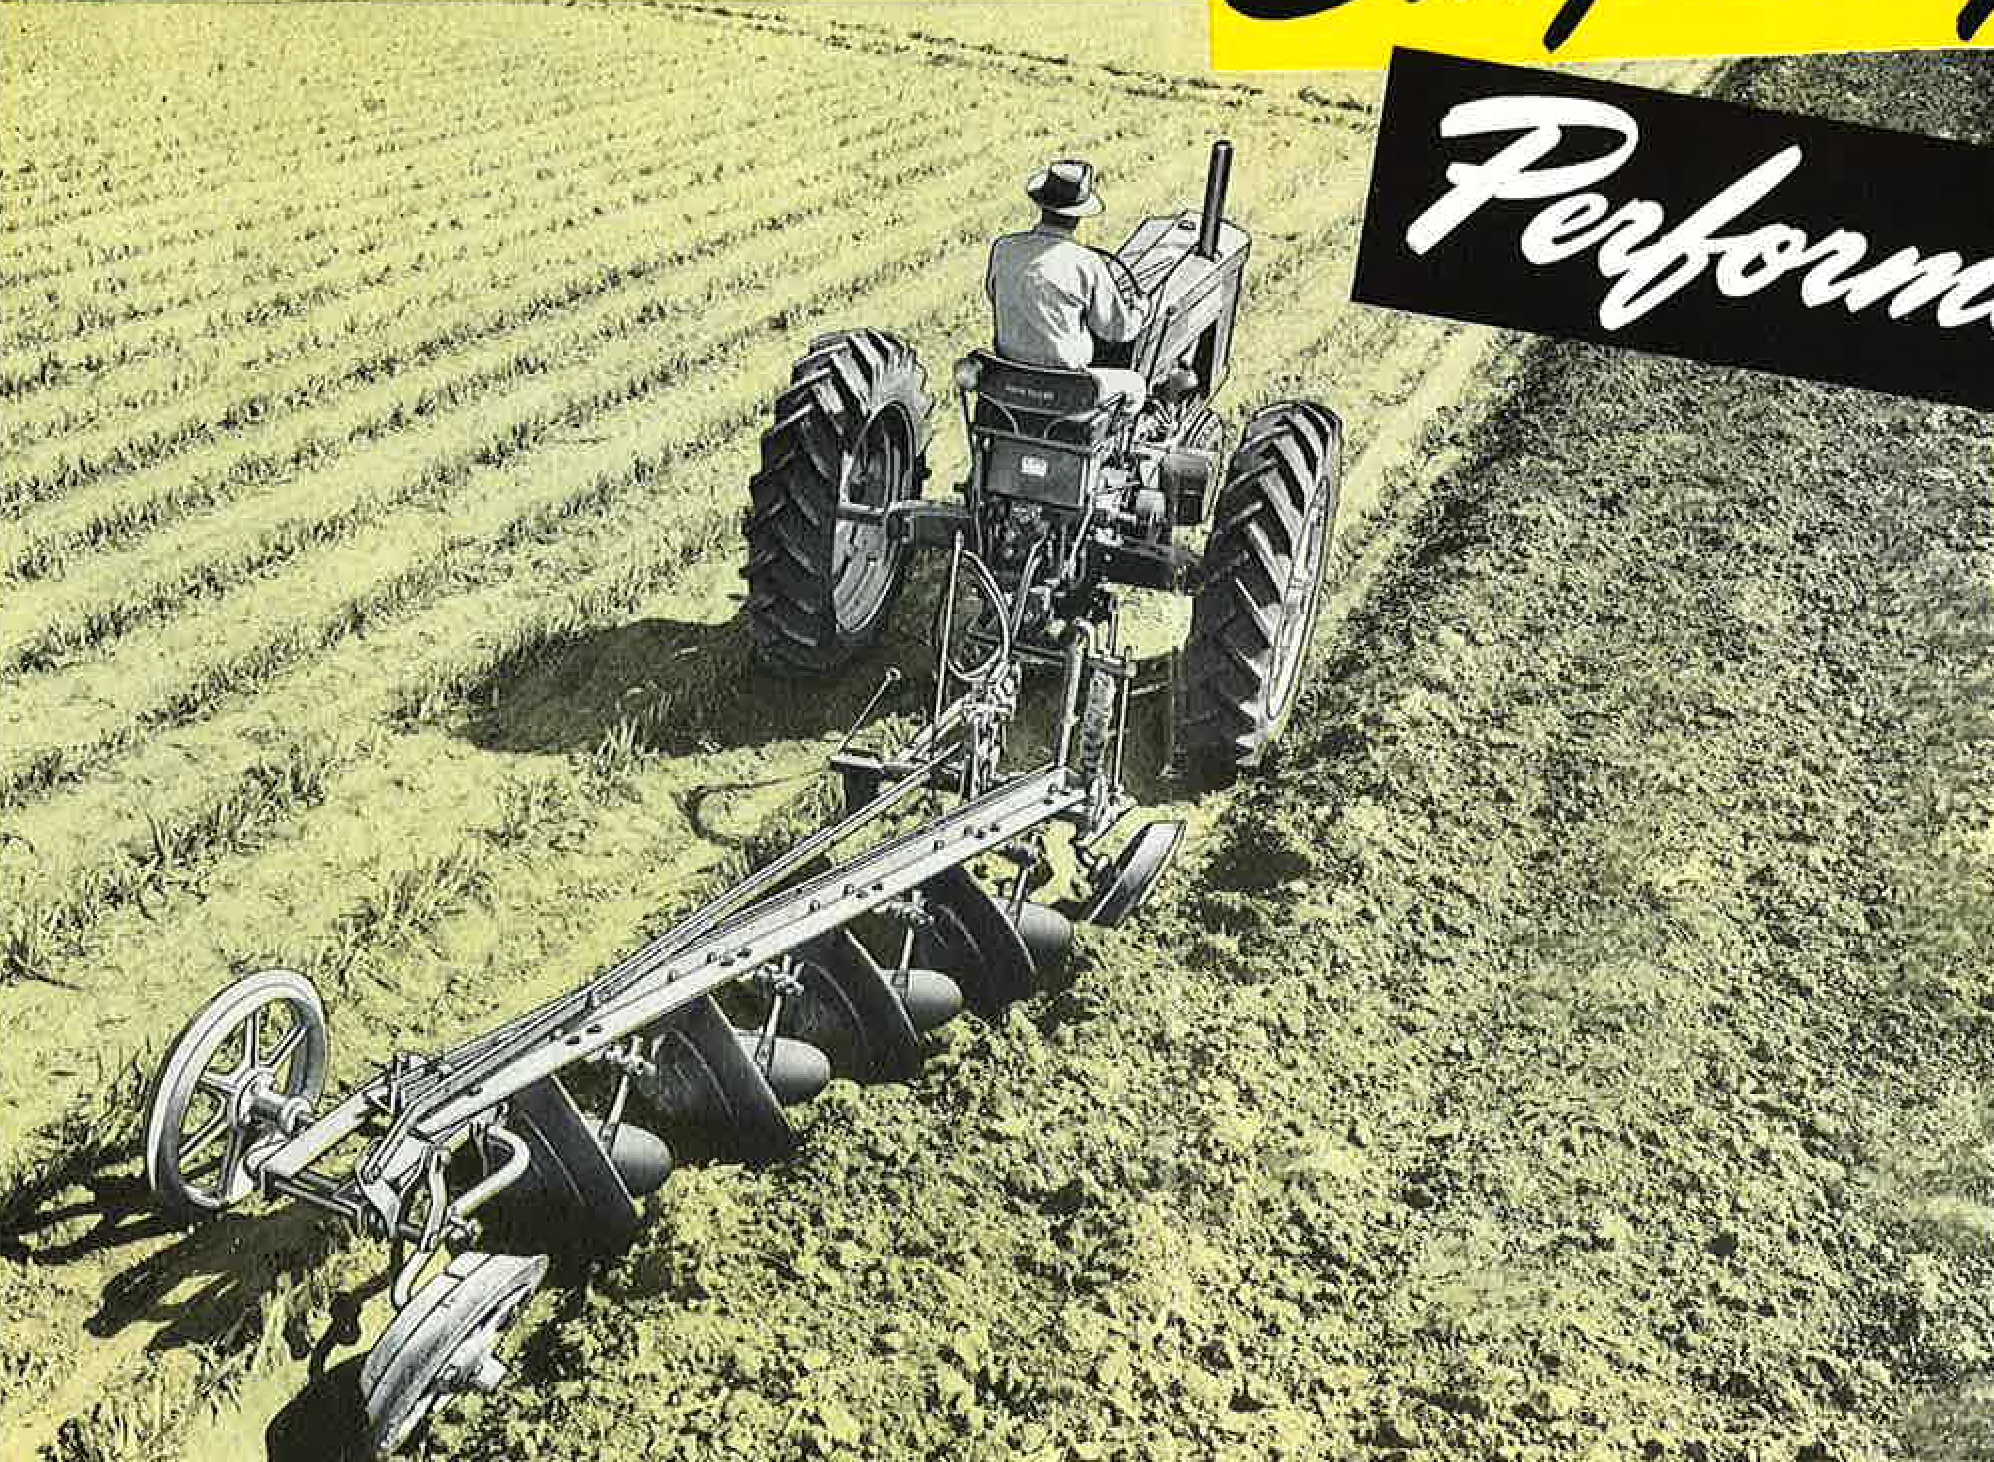 And the jd three bottom pull type plow sorry, that